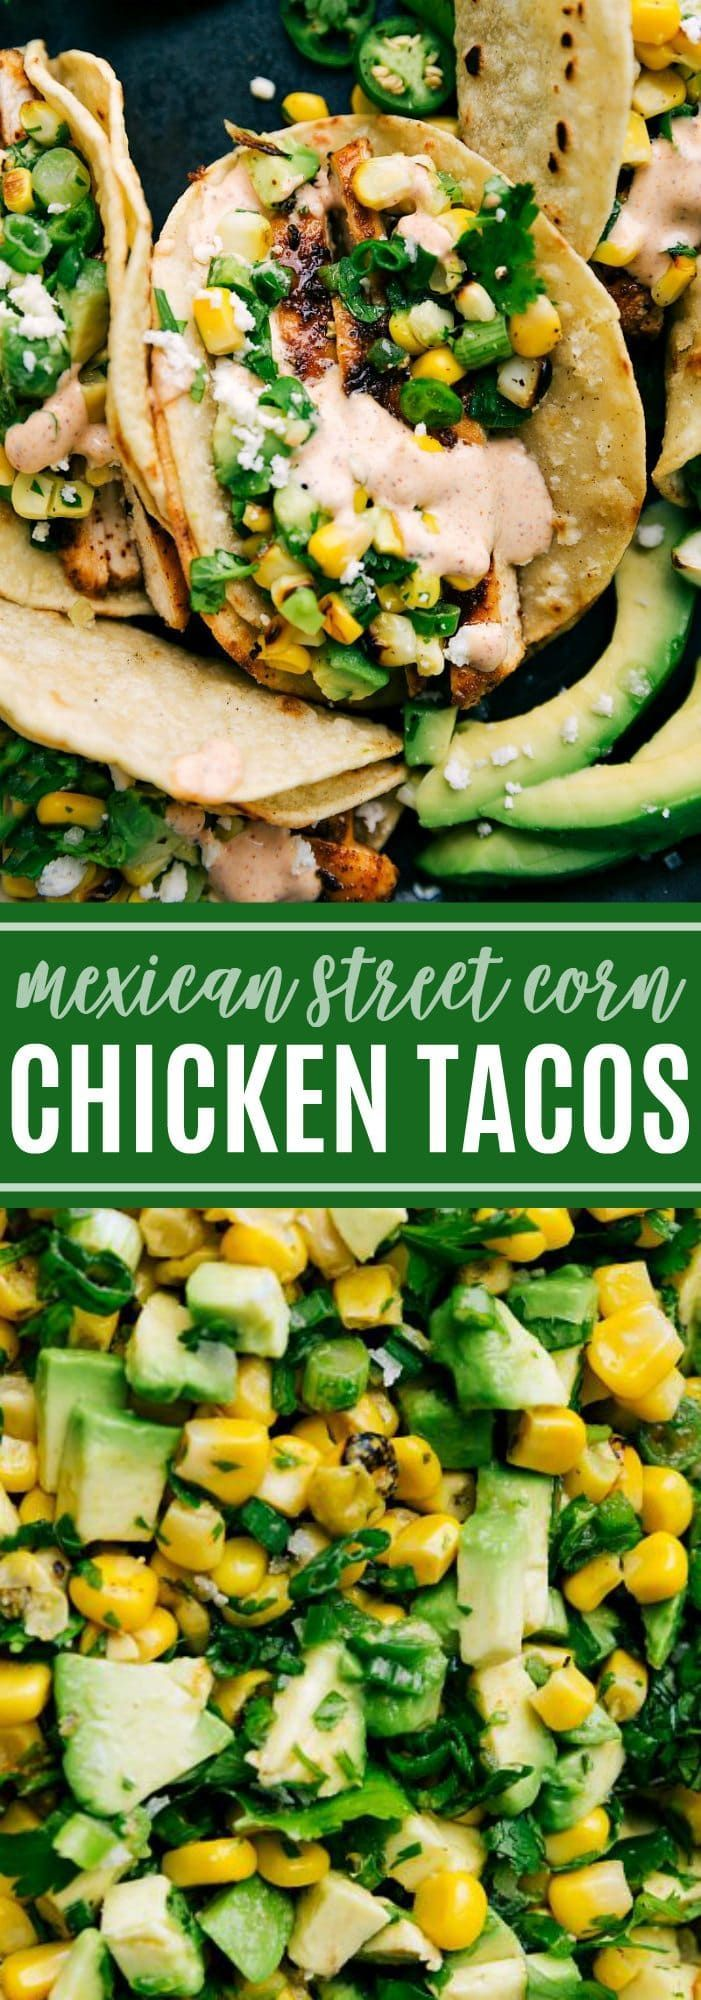 Chicken Tacos {Mexican Street Corn} | Chelsea's Messy Apron #easymexicanfoodrecipes